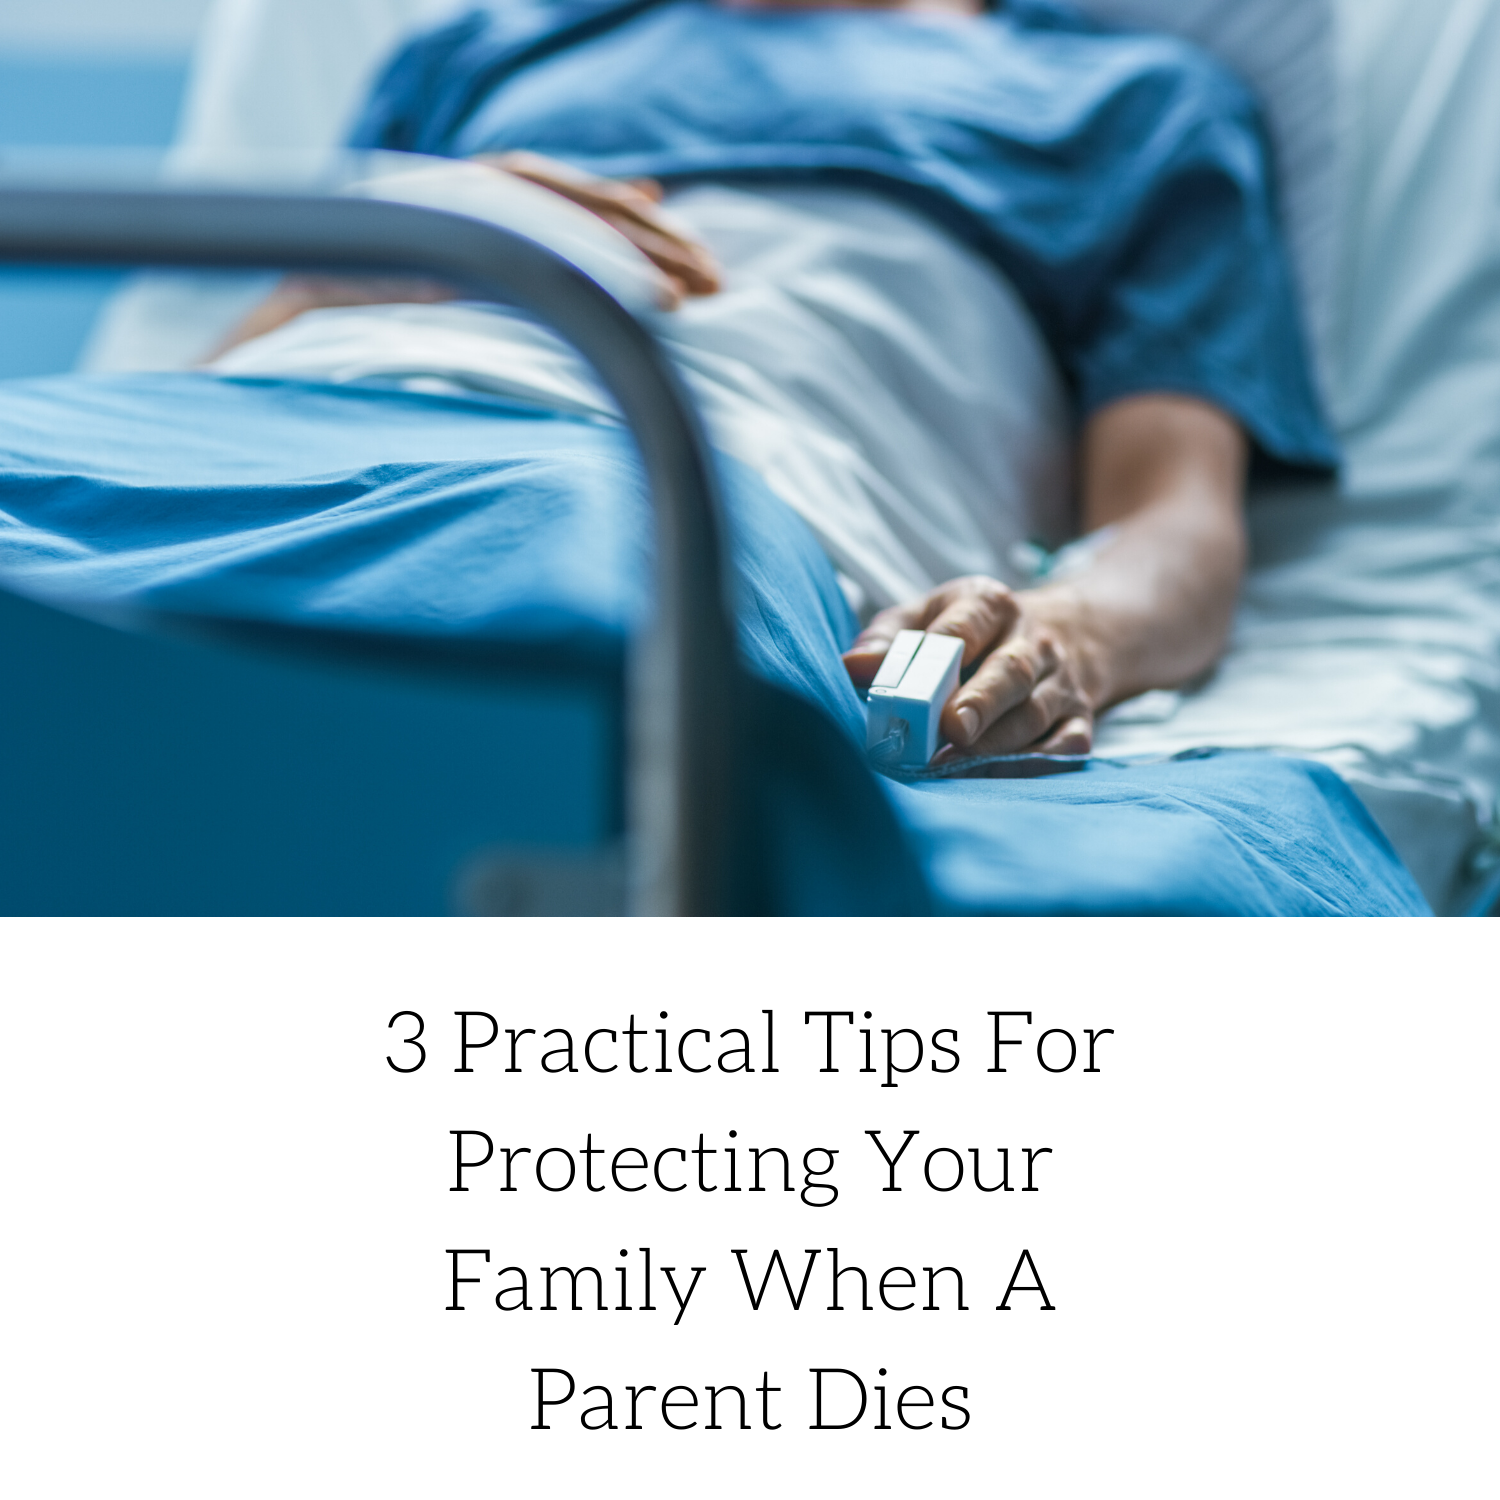 protecting-family-parent-dies